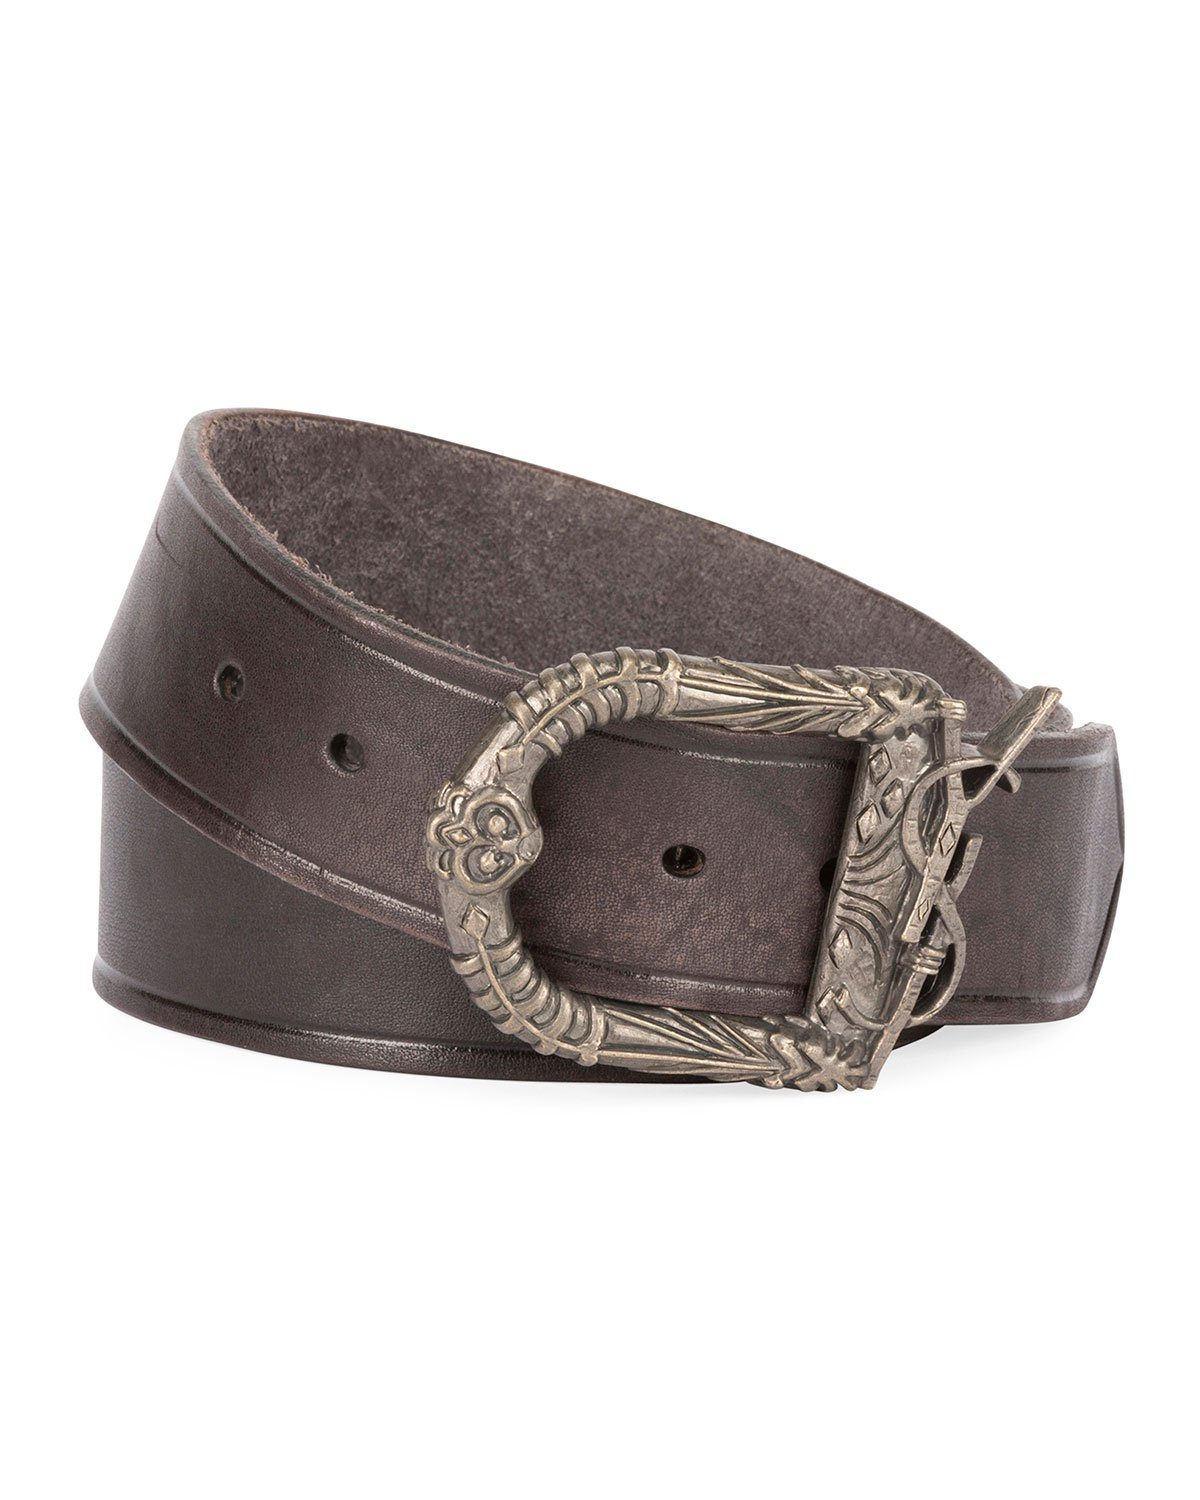 Saint Laurent Distressed Leather Belt with Ornate Buckle